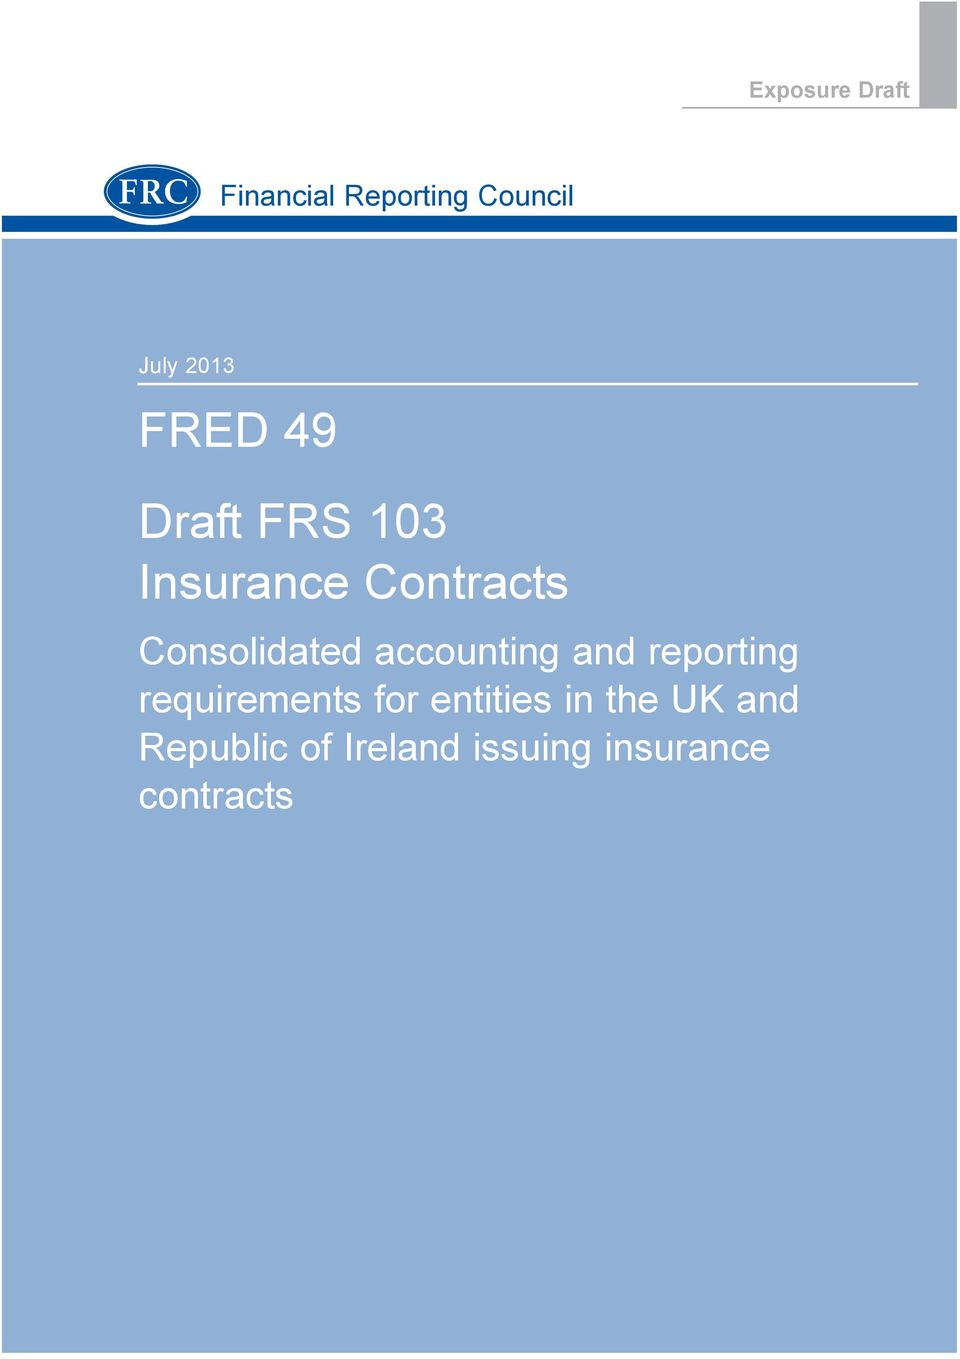 Consolidated accounting and reporting requirements for